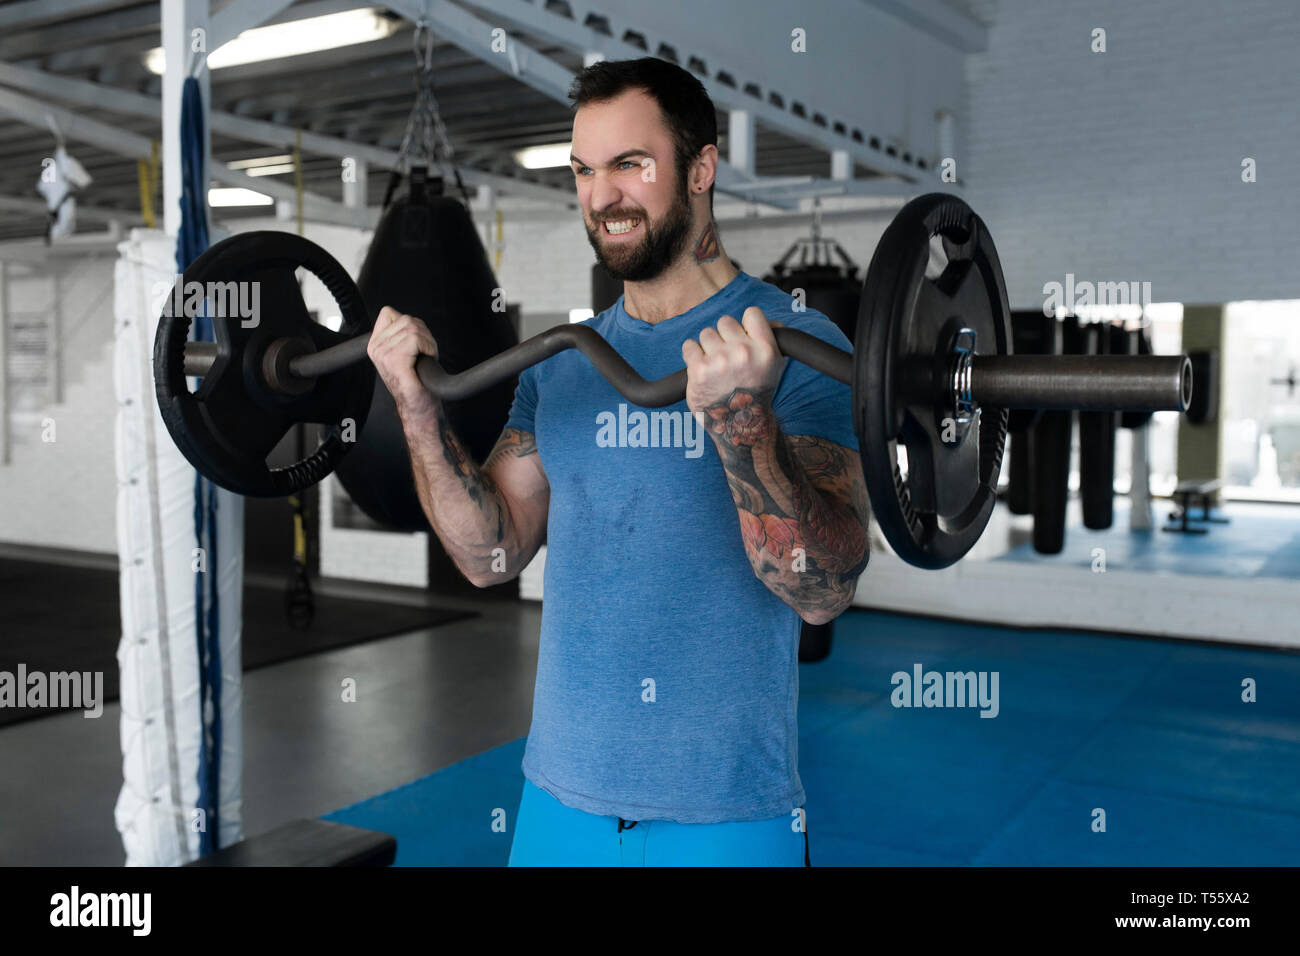 Mid adult man weight lifting in gym Stock Photo